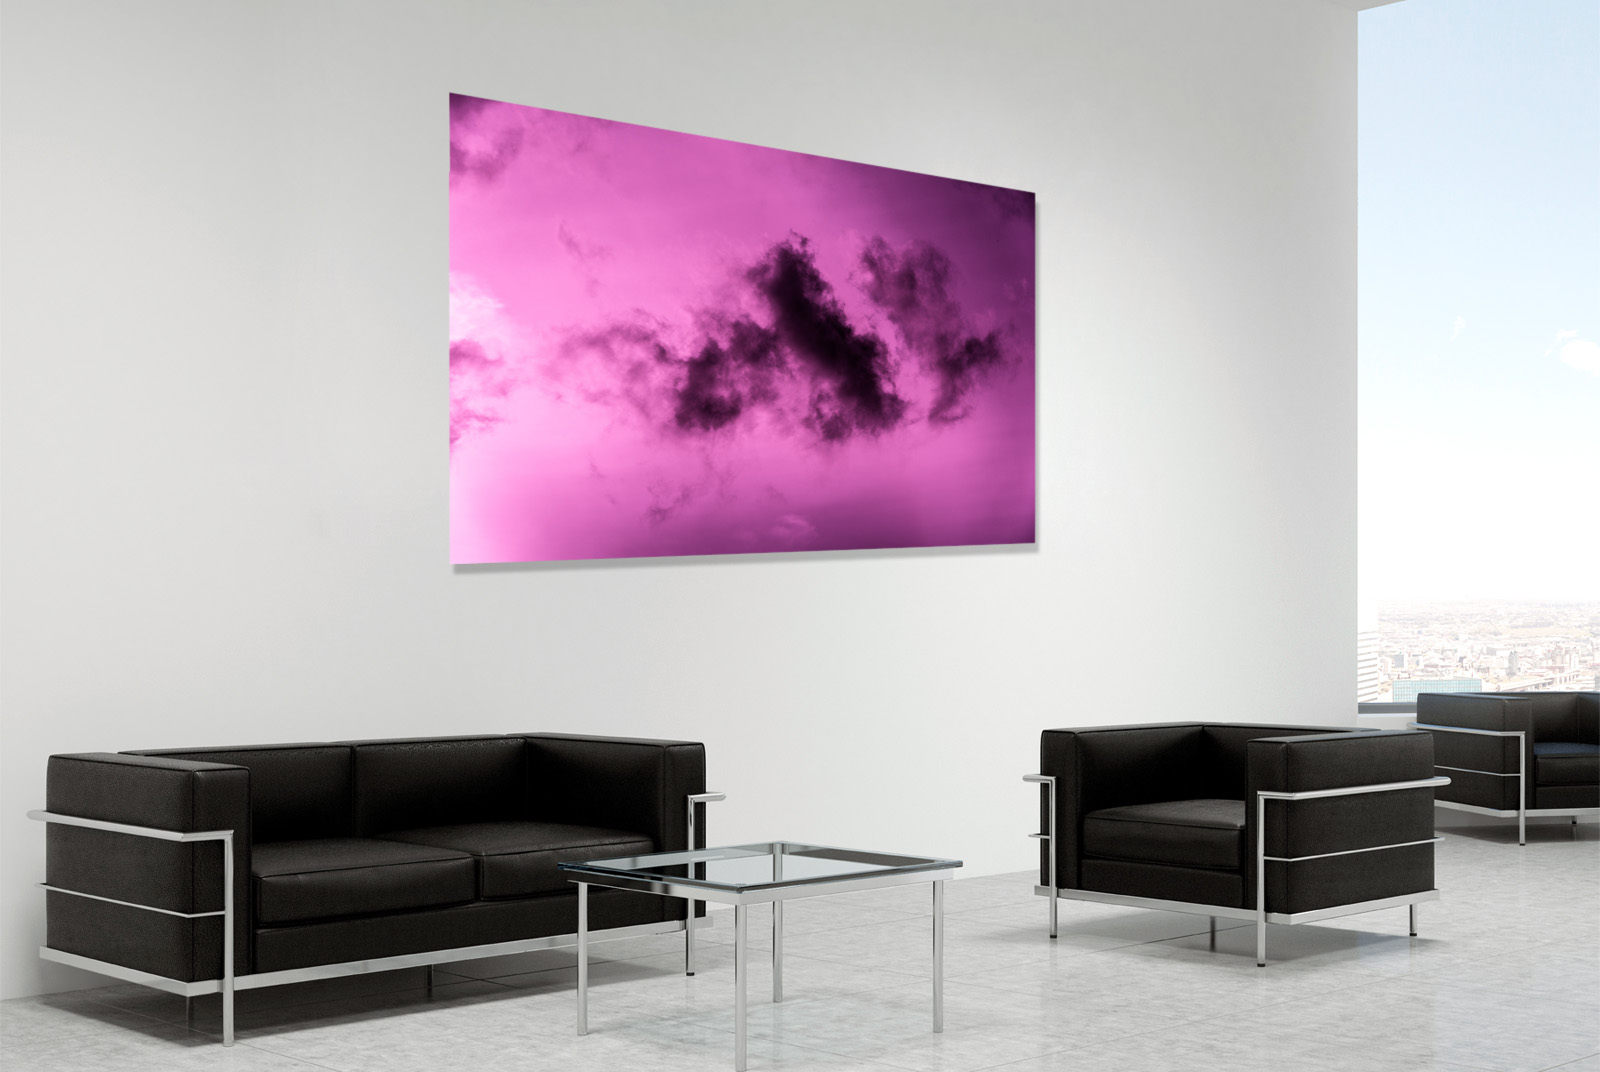 Breakaway - Fine art landscape photograph in a room setting - photo reference 5456.